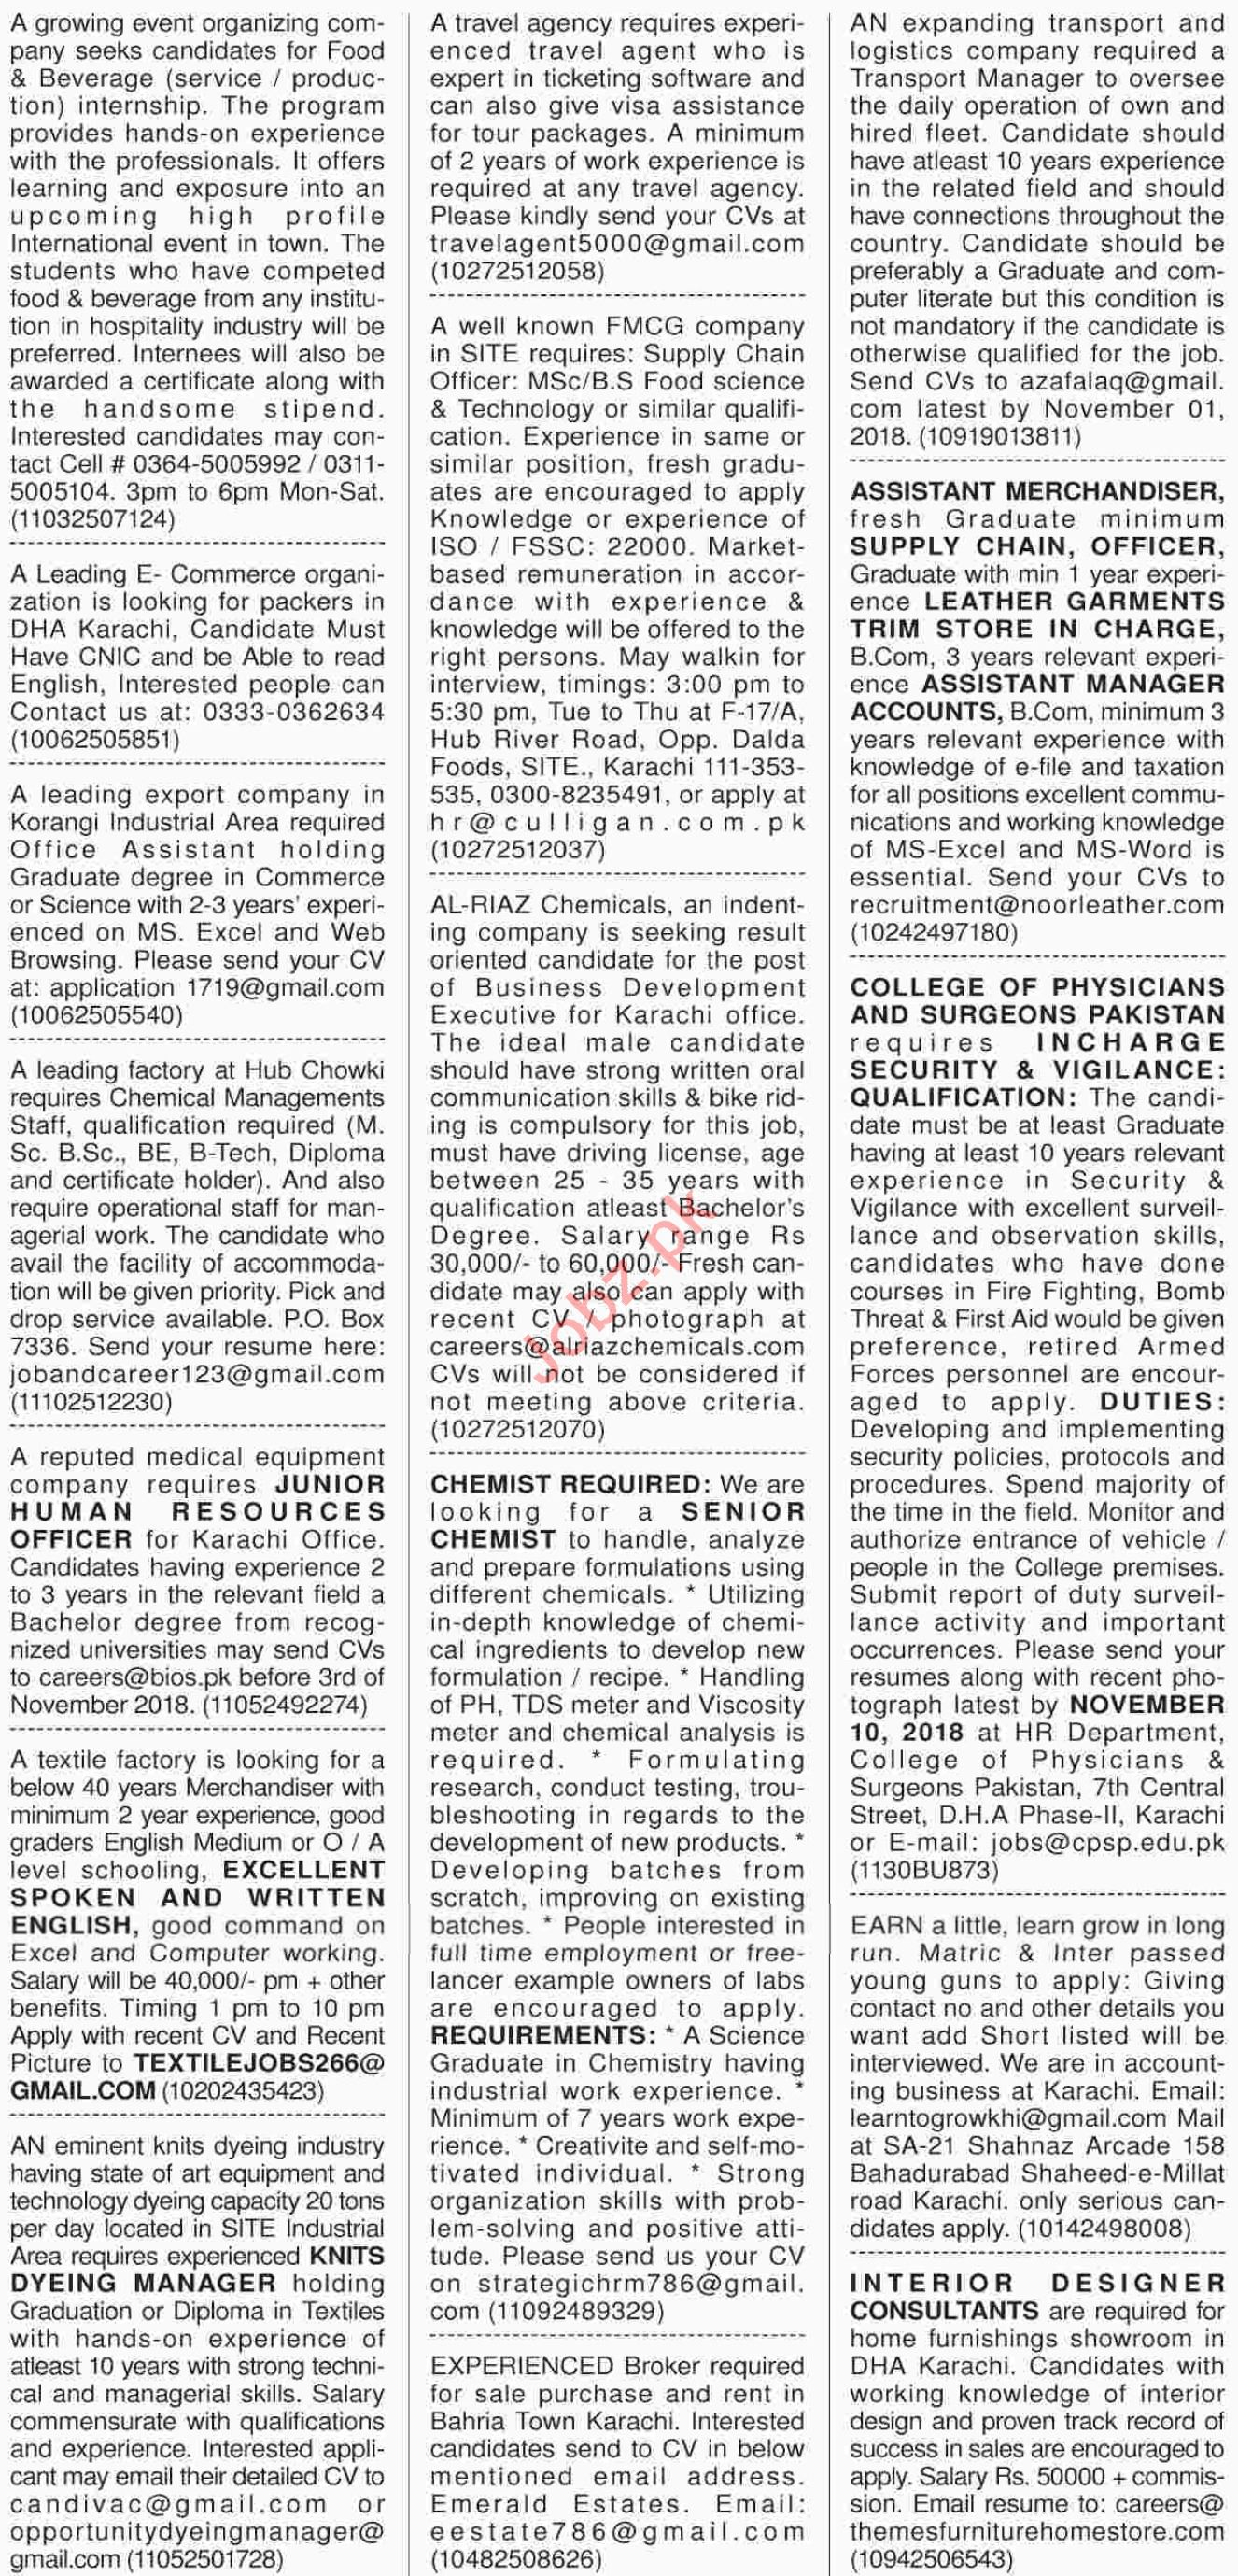 Dawn Sunday Classified Ads for Consultant Jobs